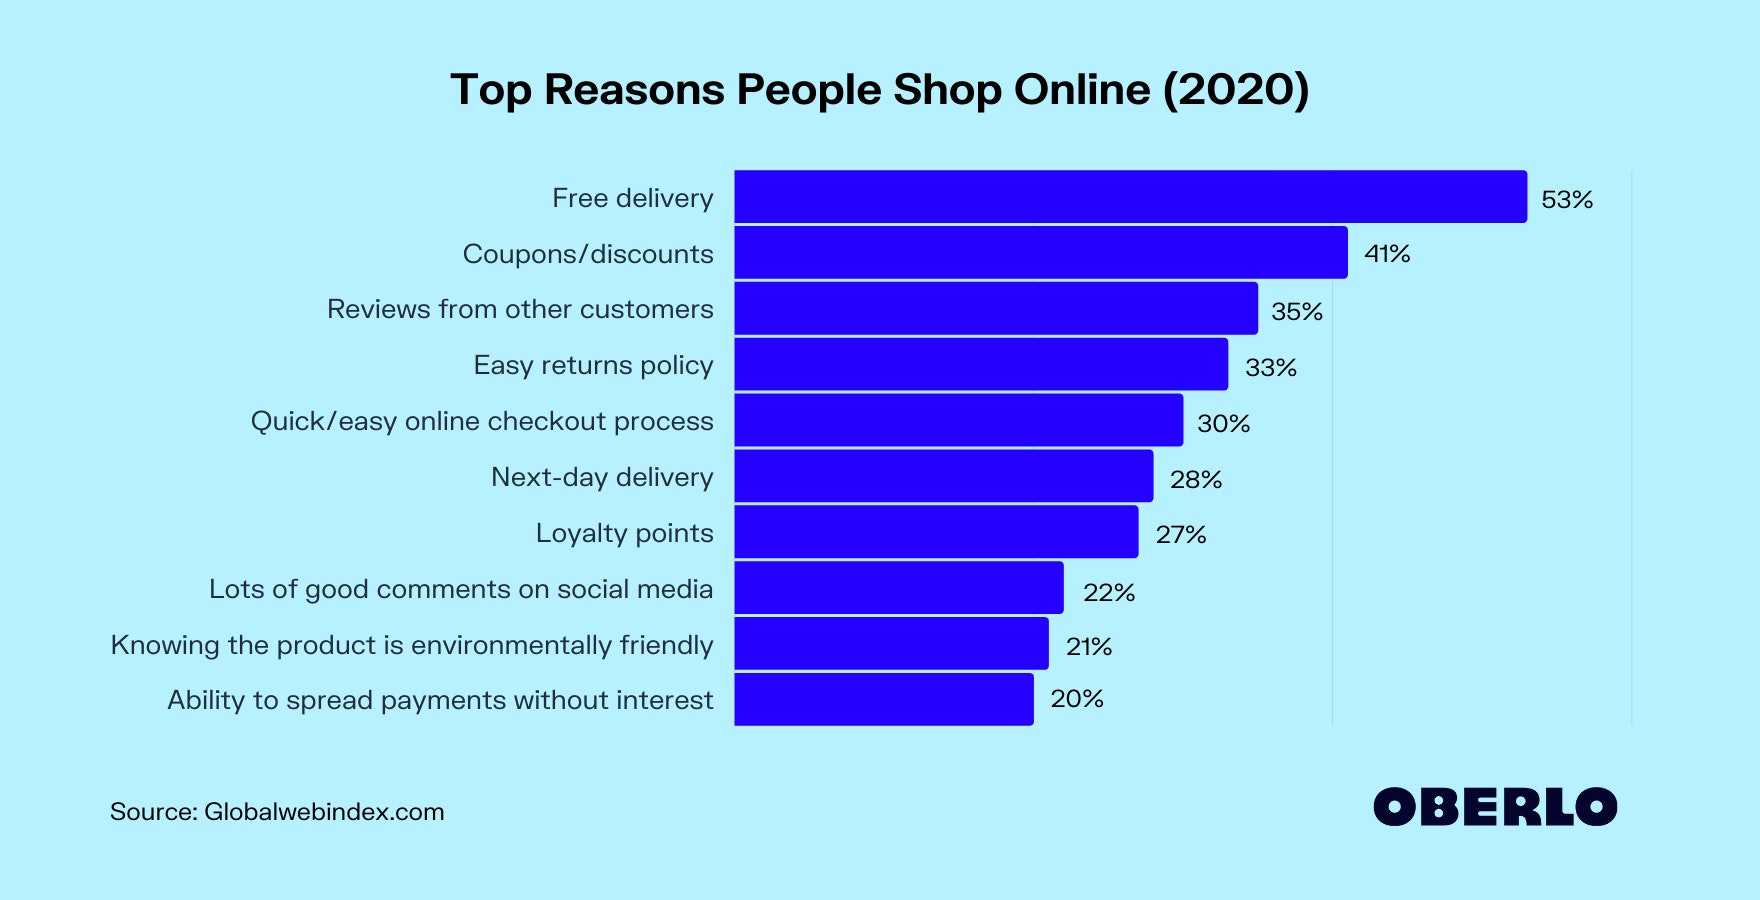 Top Reasons People Shop Online (2020)